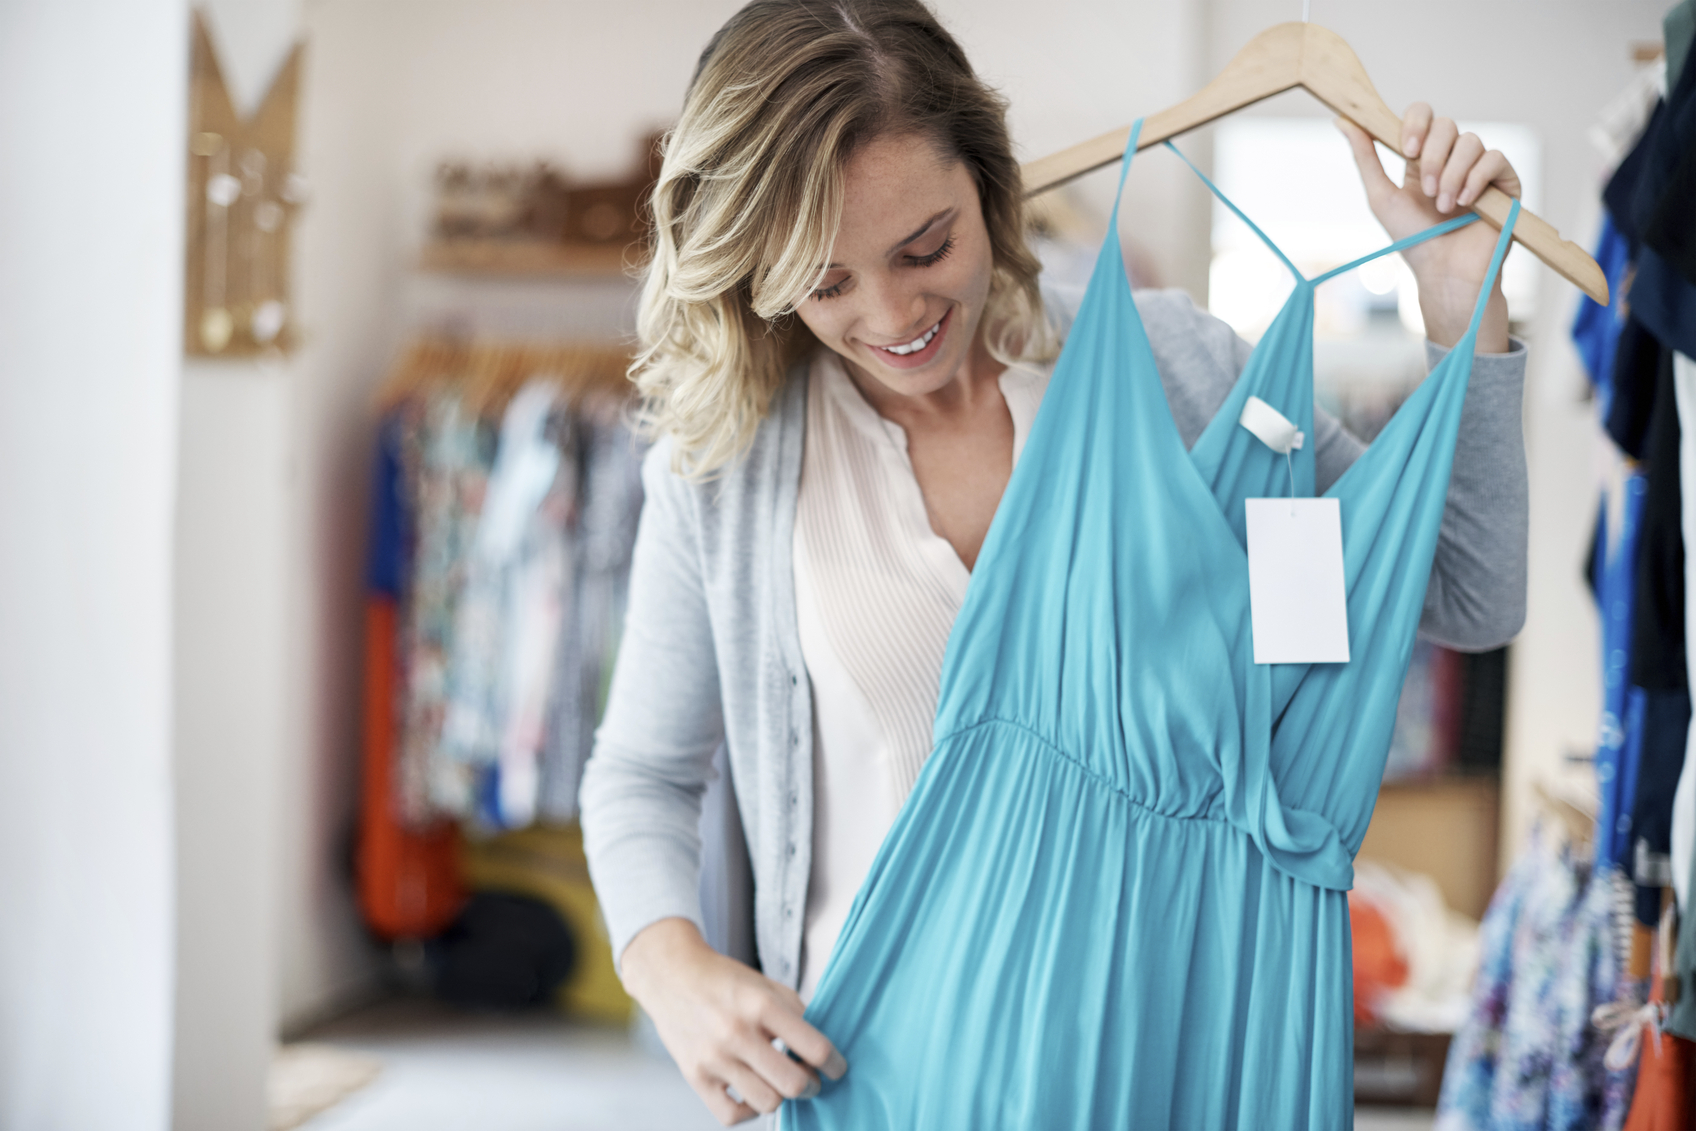 7a4c897ad 5 Tips for Selling Clothes Online - NerdWallet